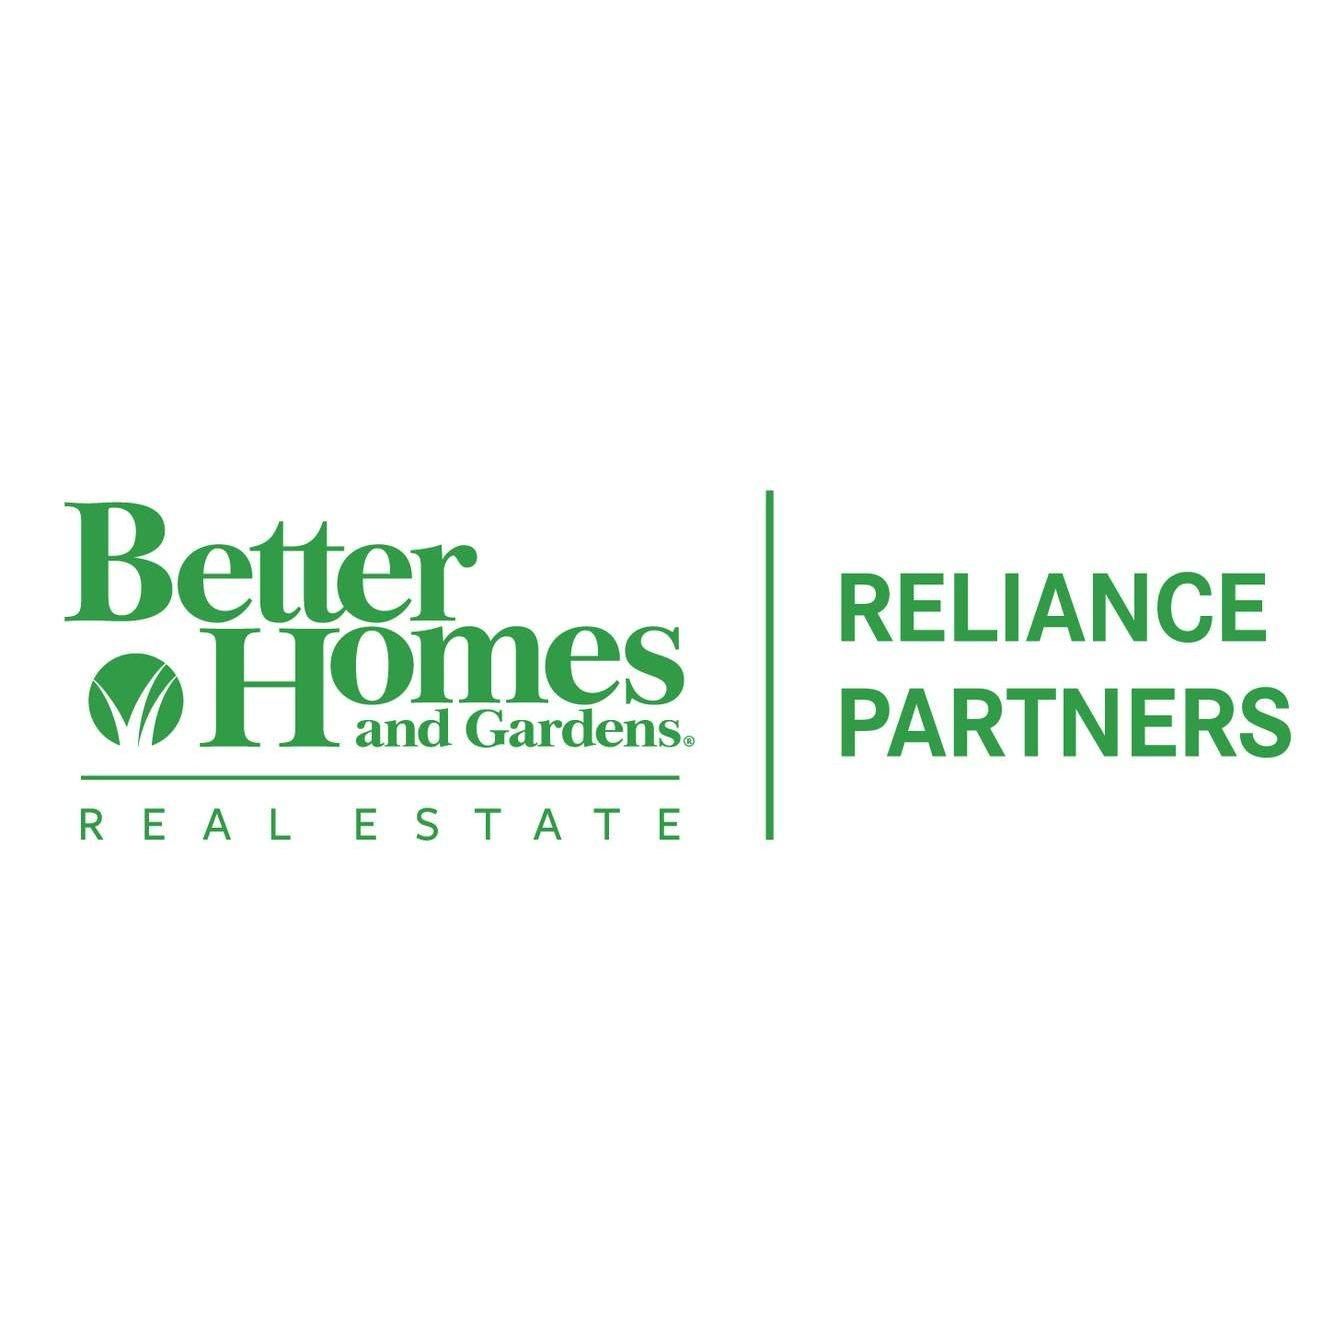 Sarah Torney Better Homes And Gardens Real Estate Reliance Partners Berkeley California Ca